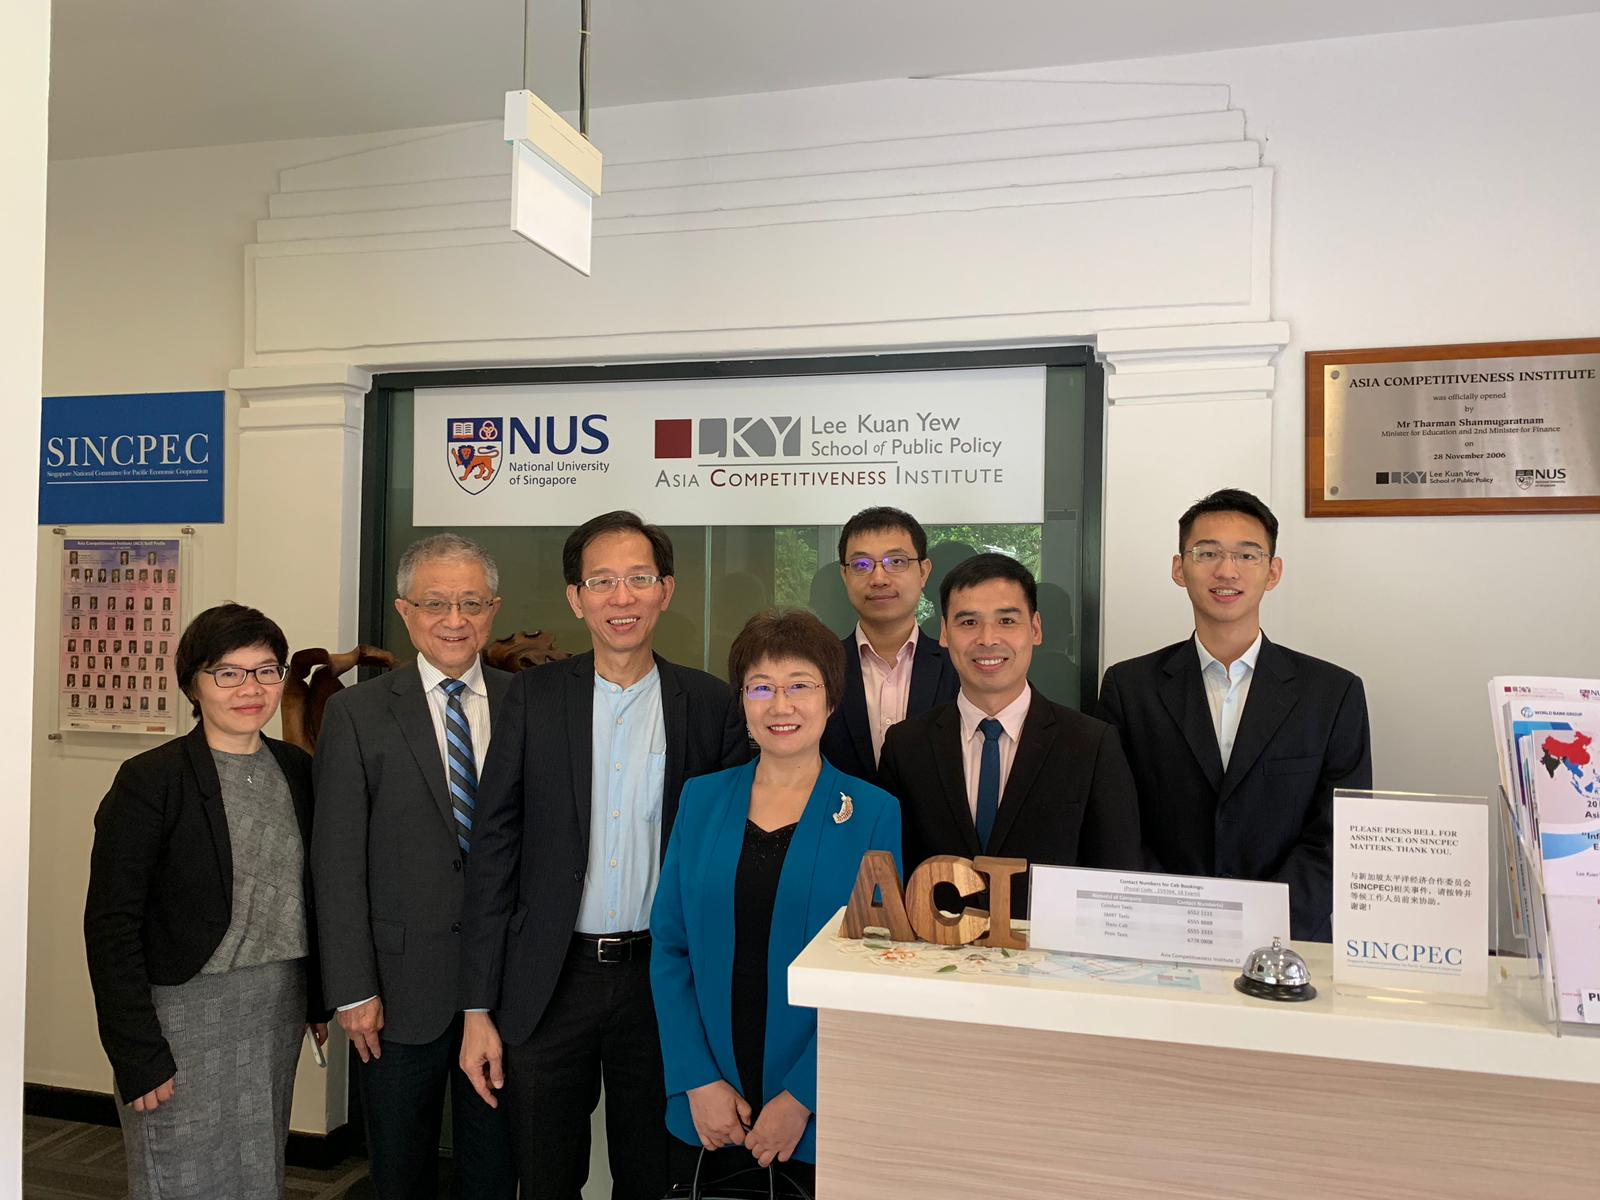 Visit by delegation from Shanghai Academy of Social Sciences